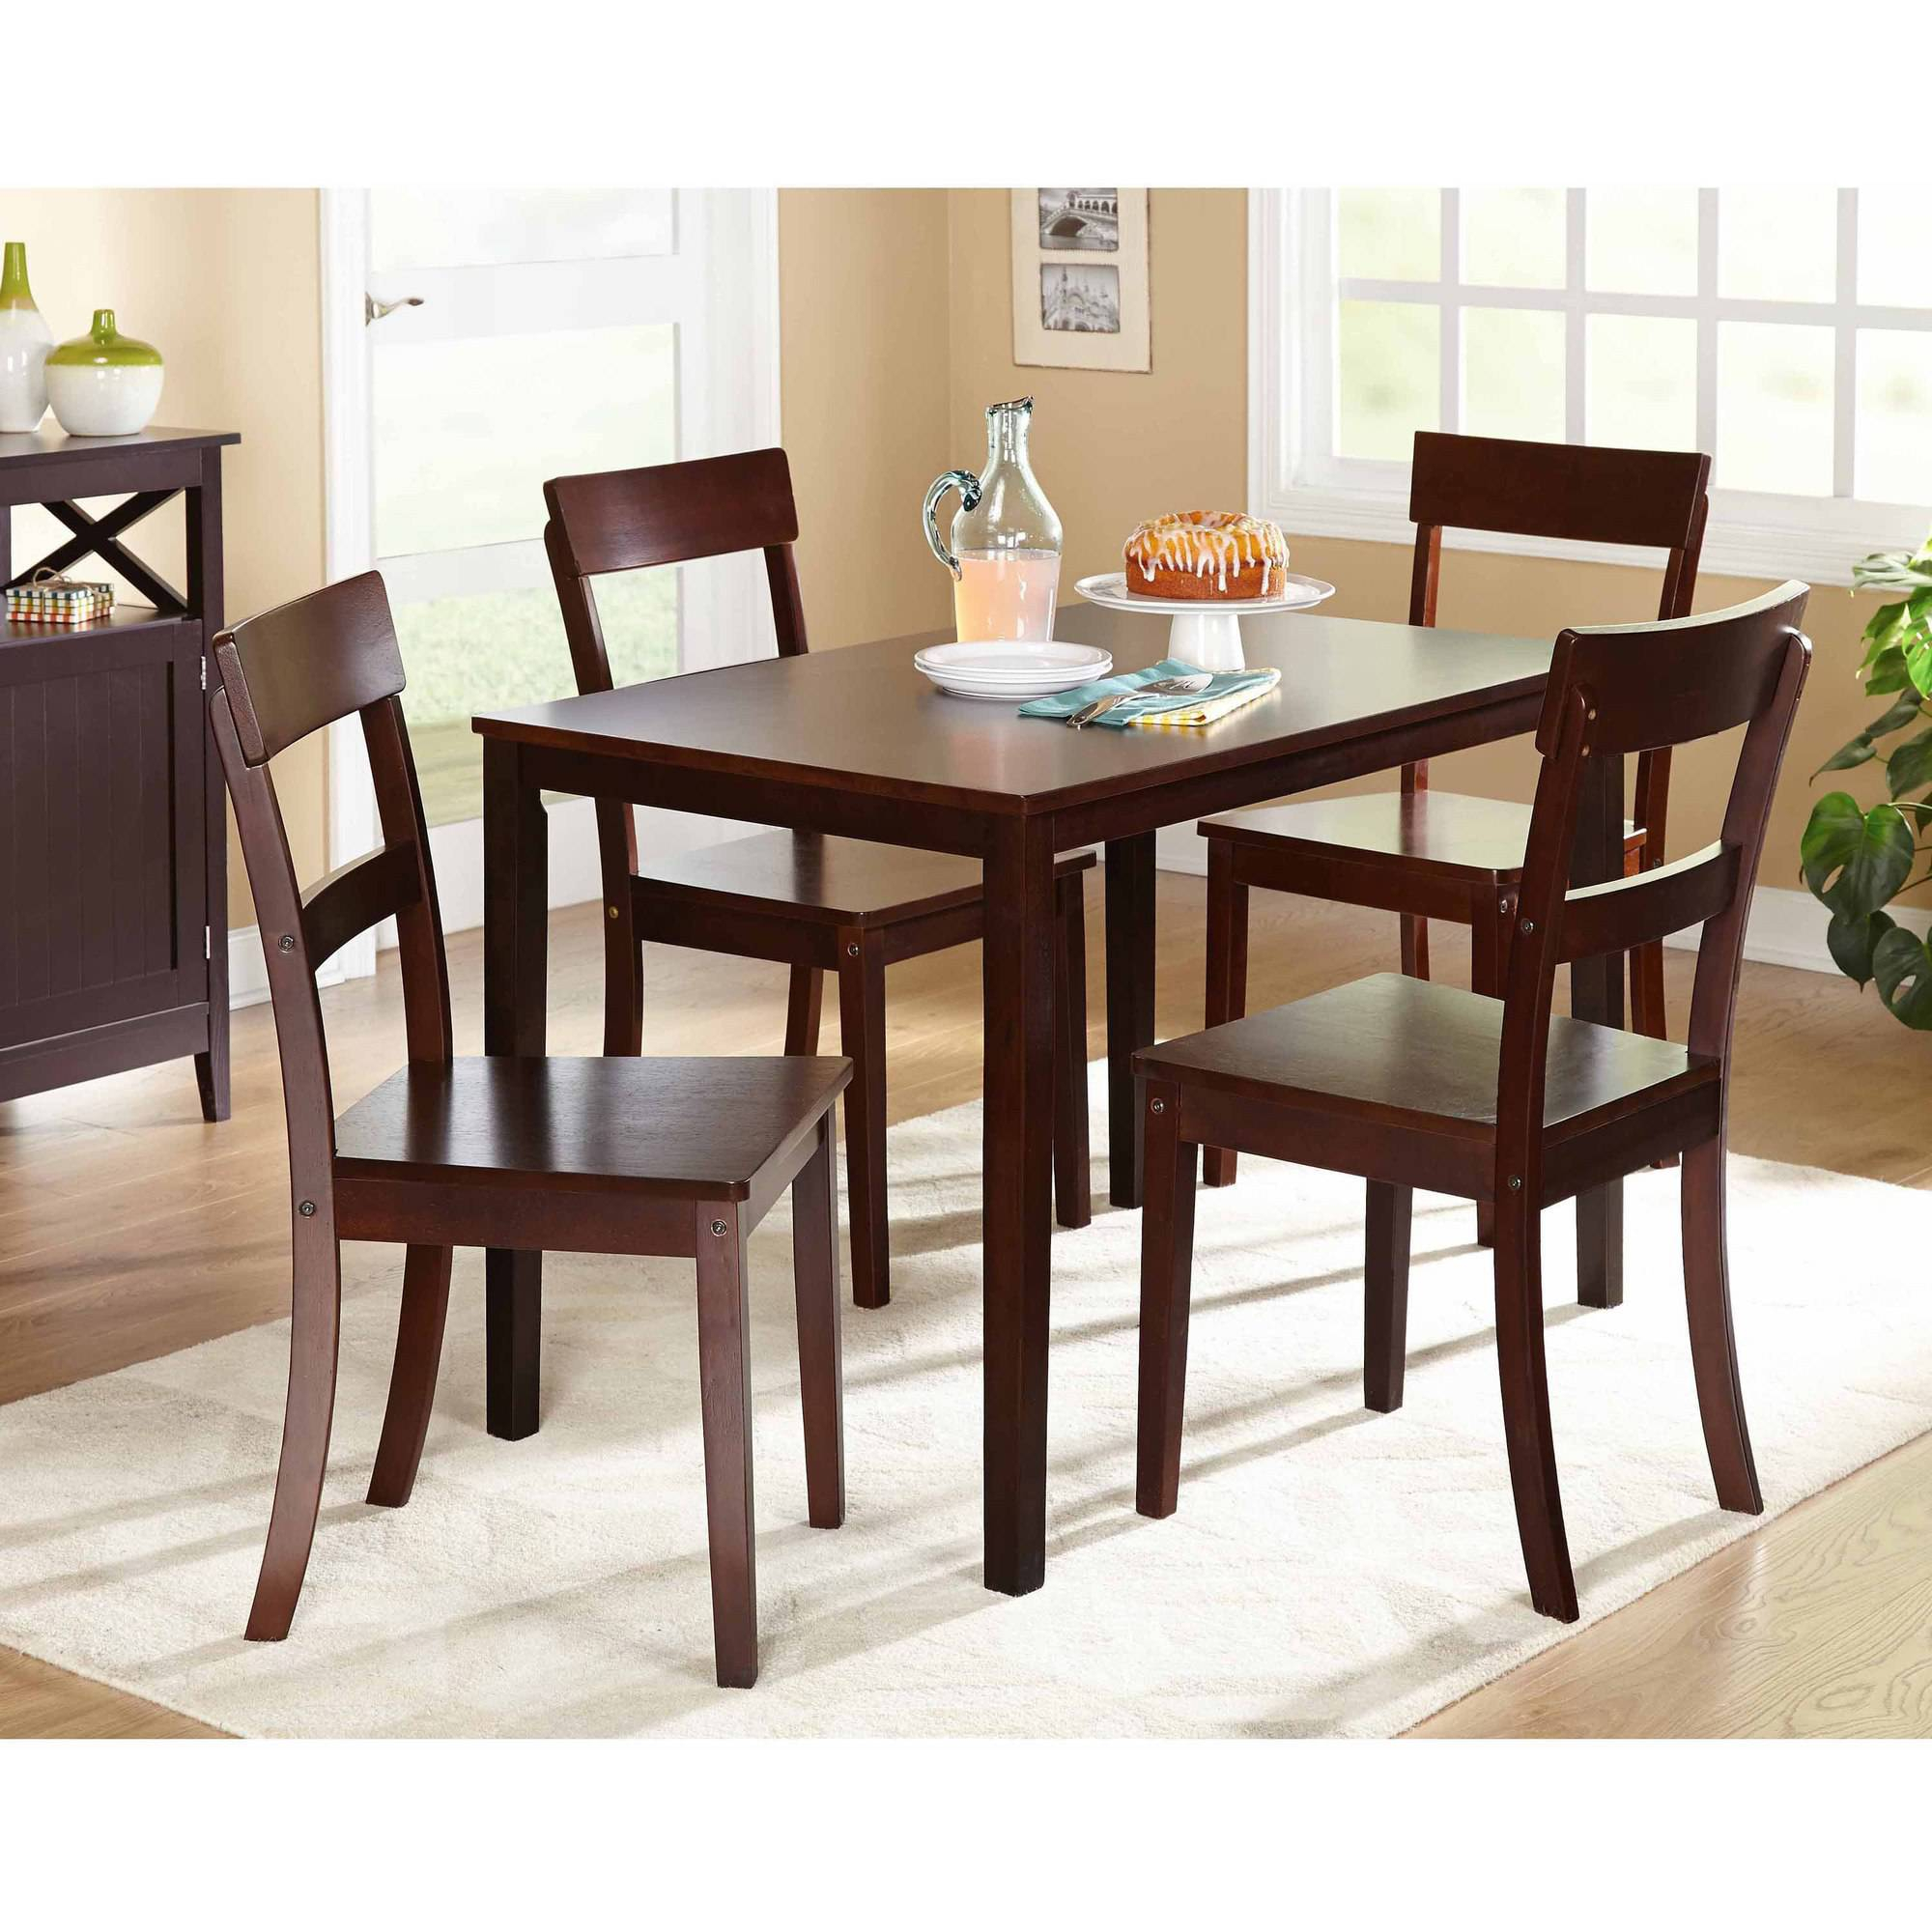 Beverly 5 Piece Dining Set, Multiple Finishes Throughout Recent 5 Piece Dining Sets (View 8 of 20)